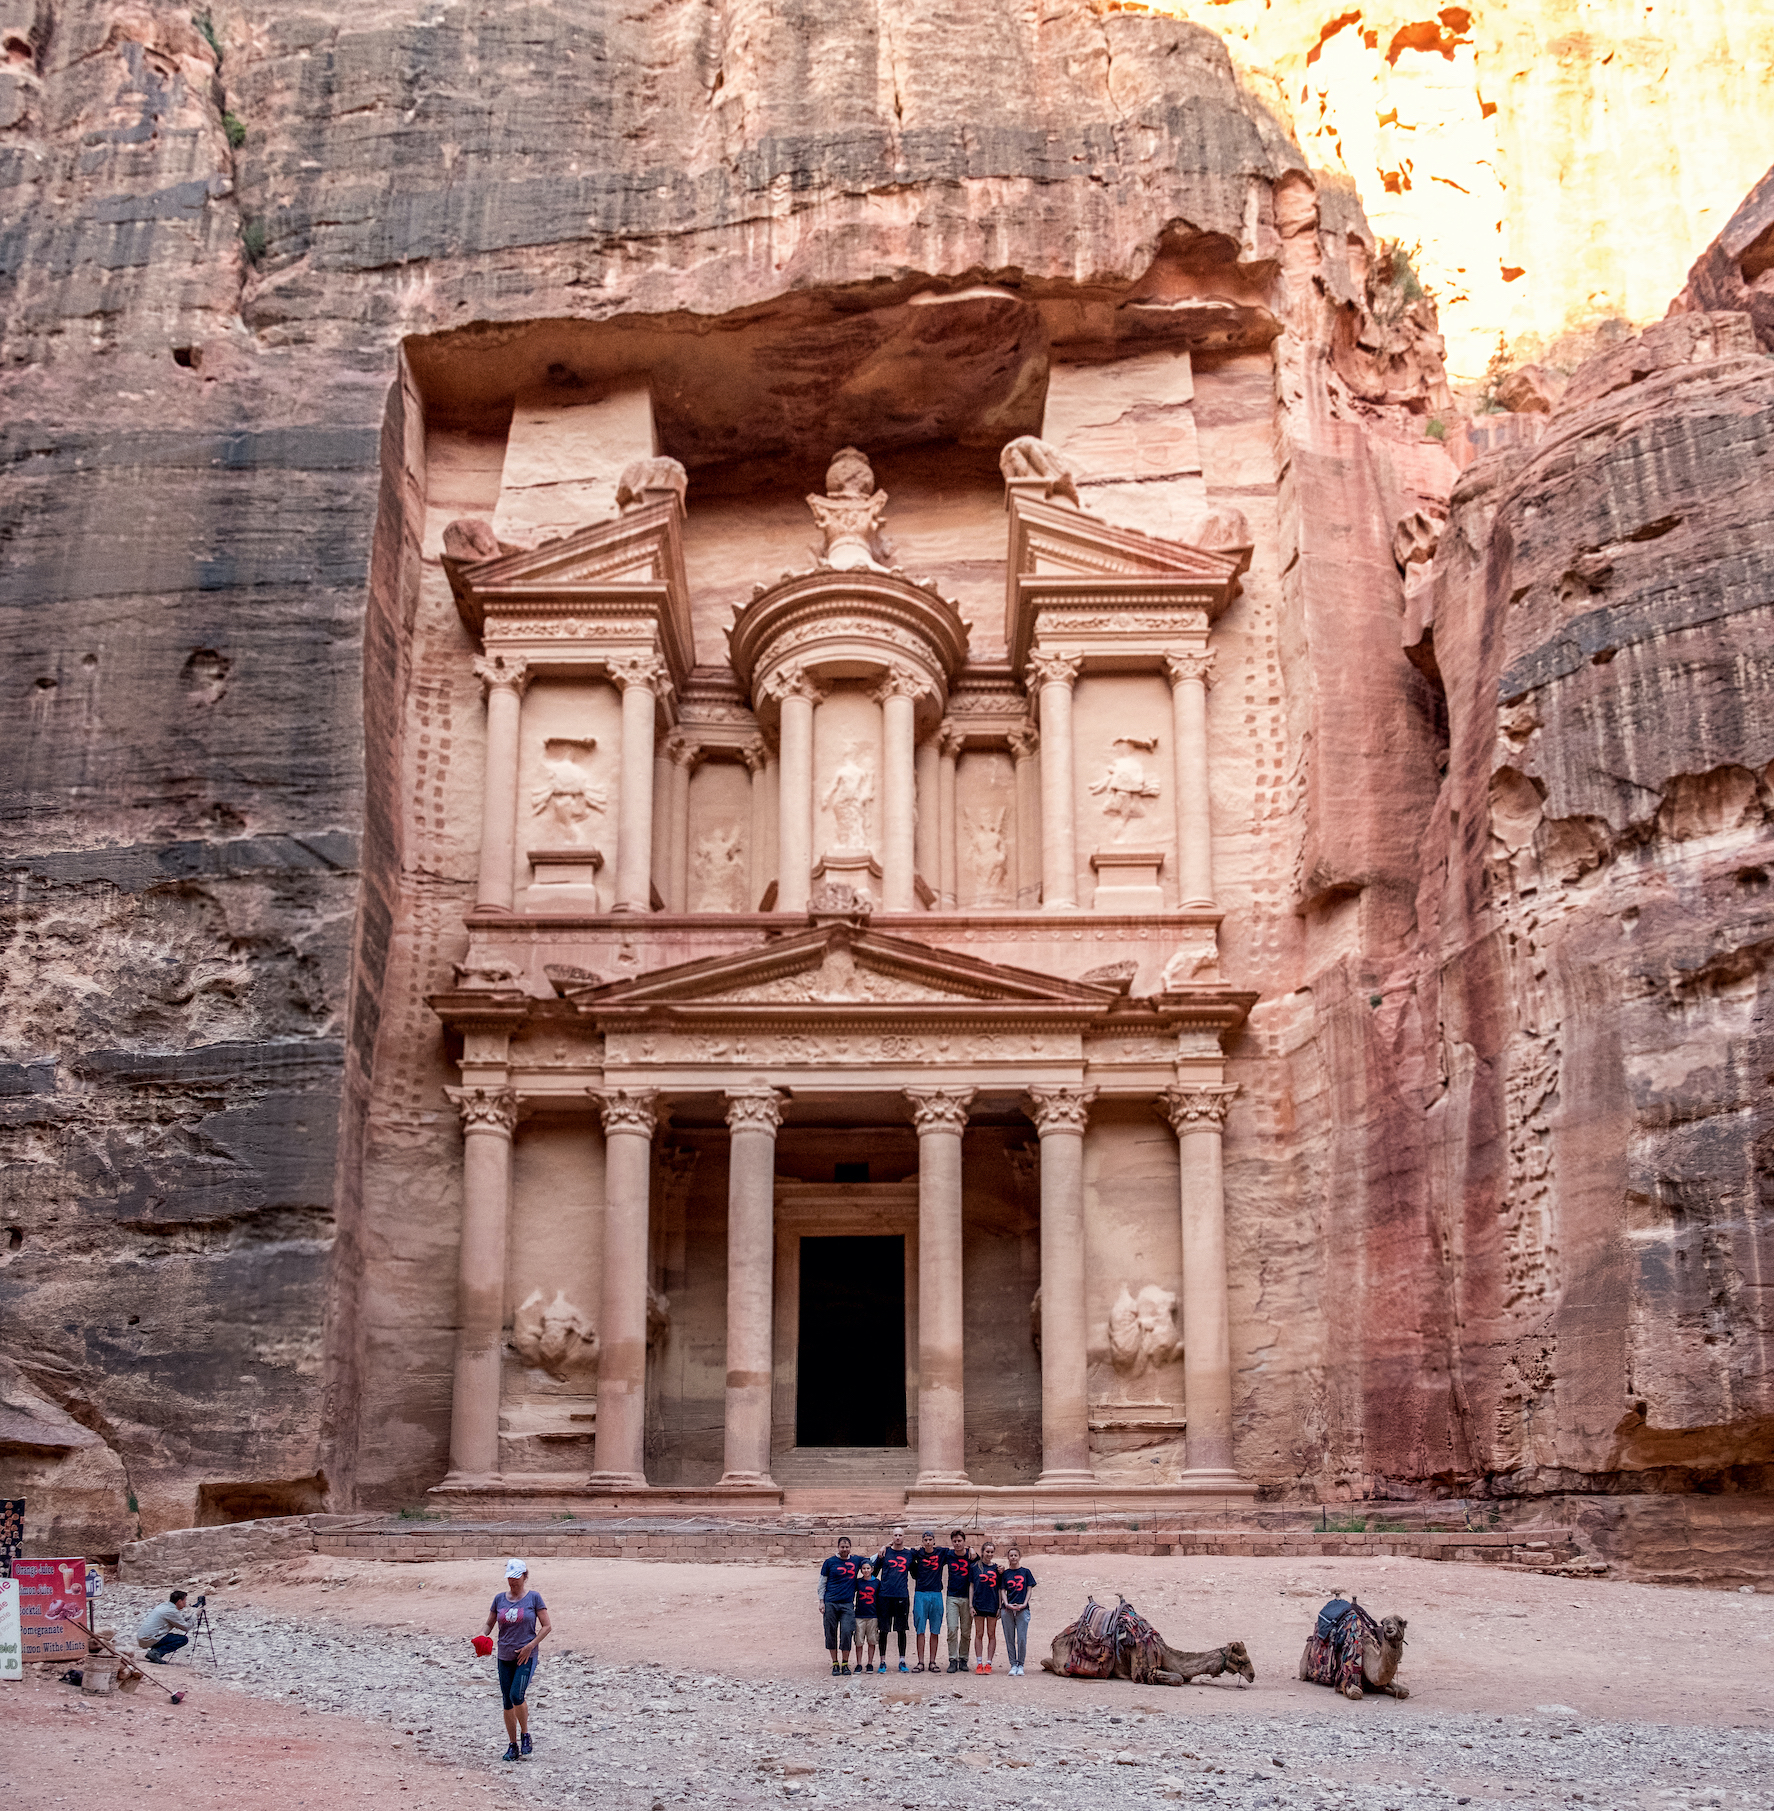 https://bubo.sk/uploads/galleries/4933/izrael-jordansko-rodina-petra.jpg